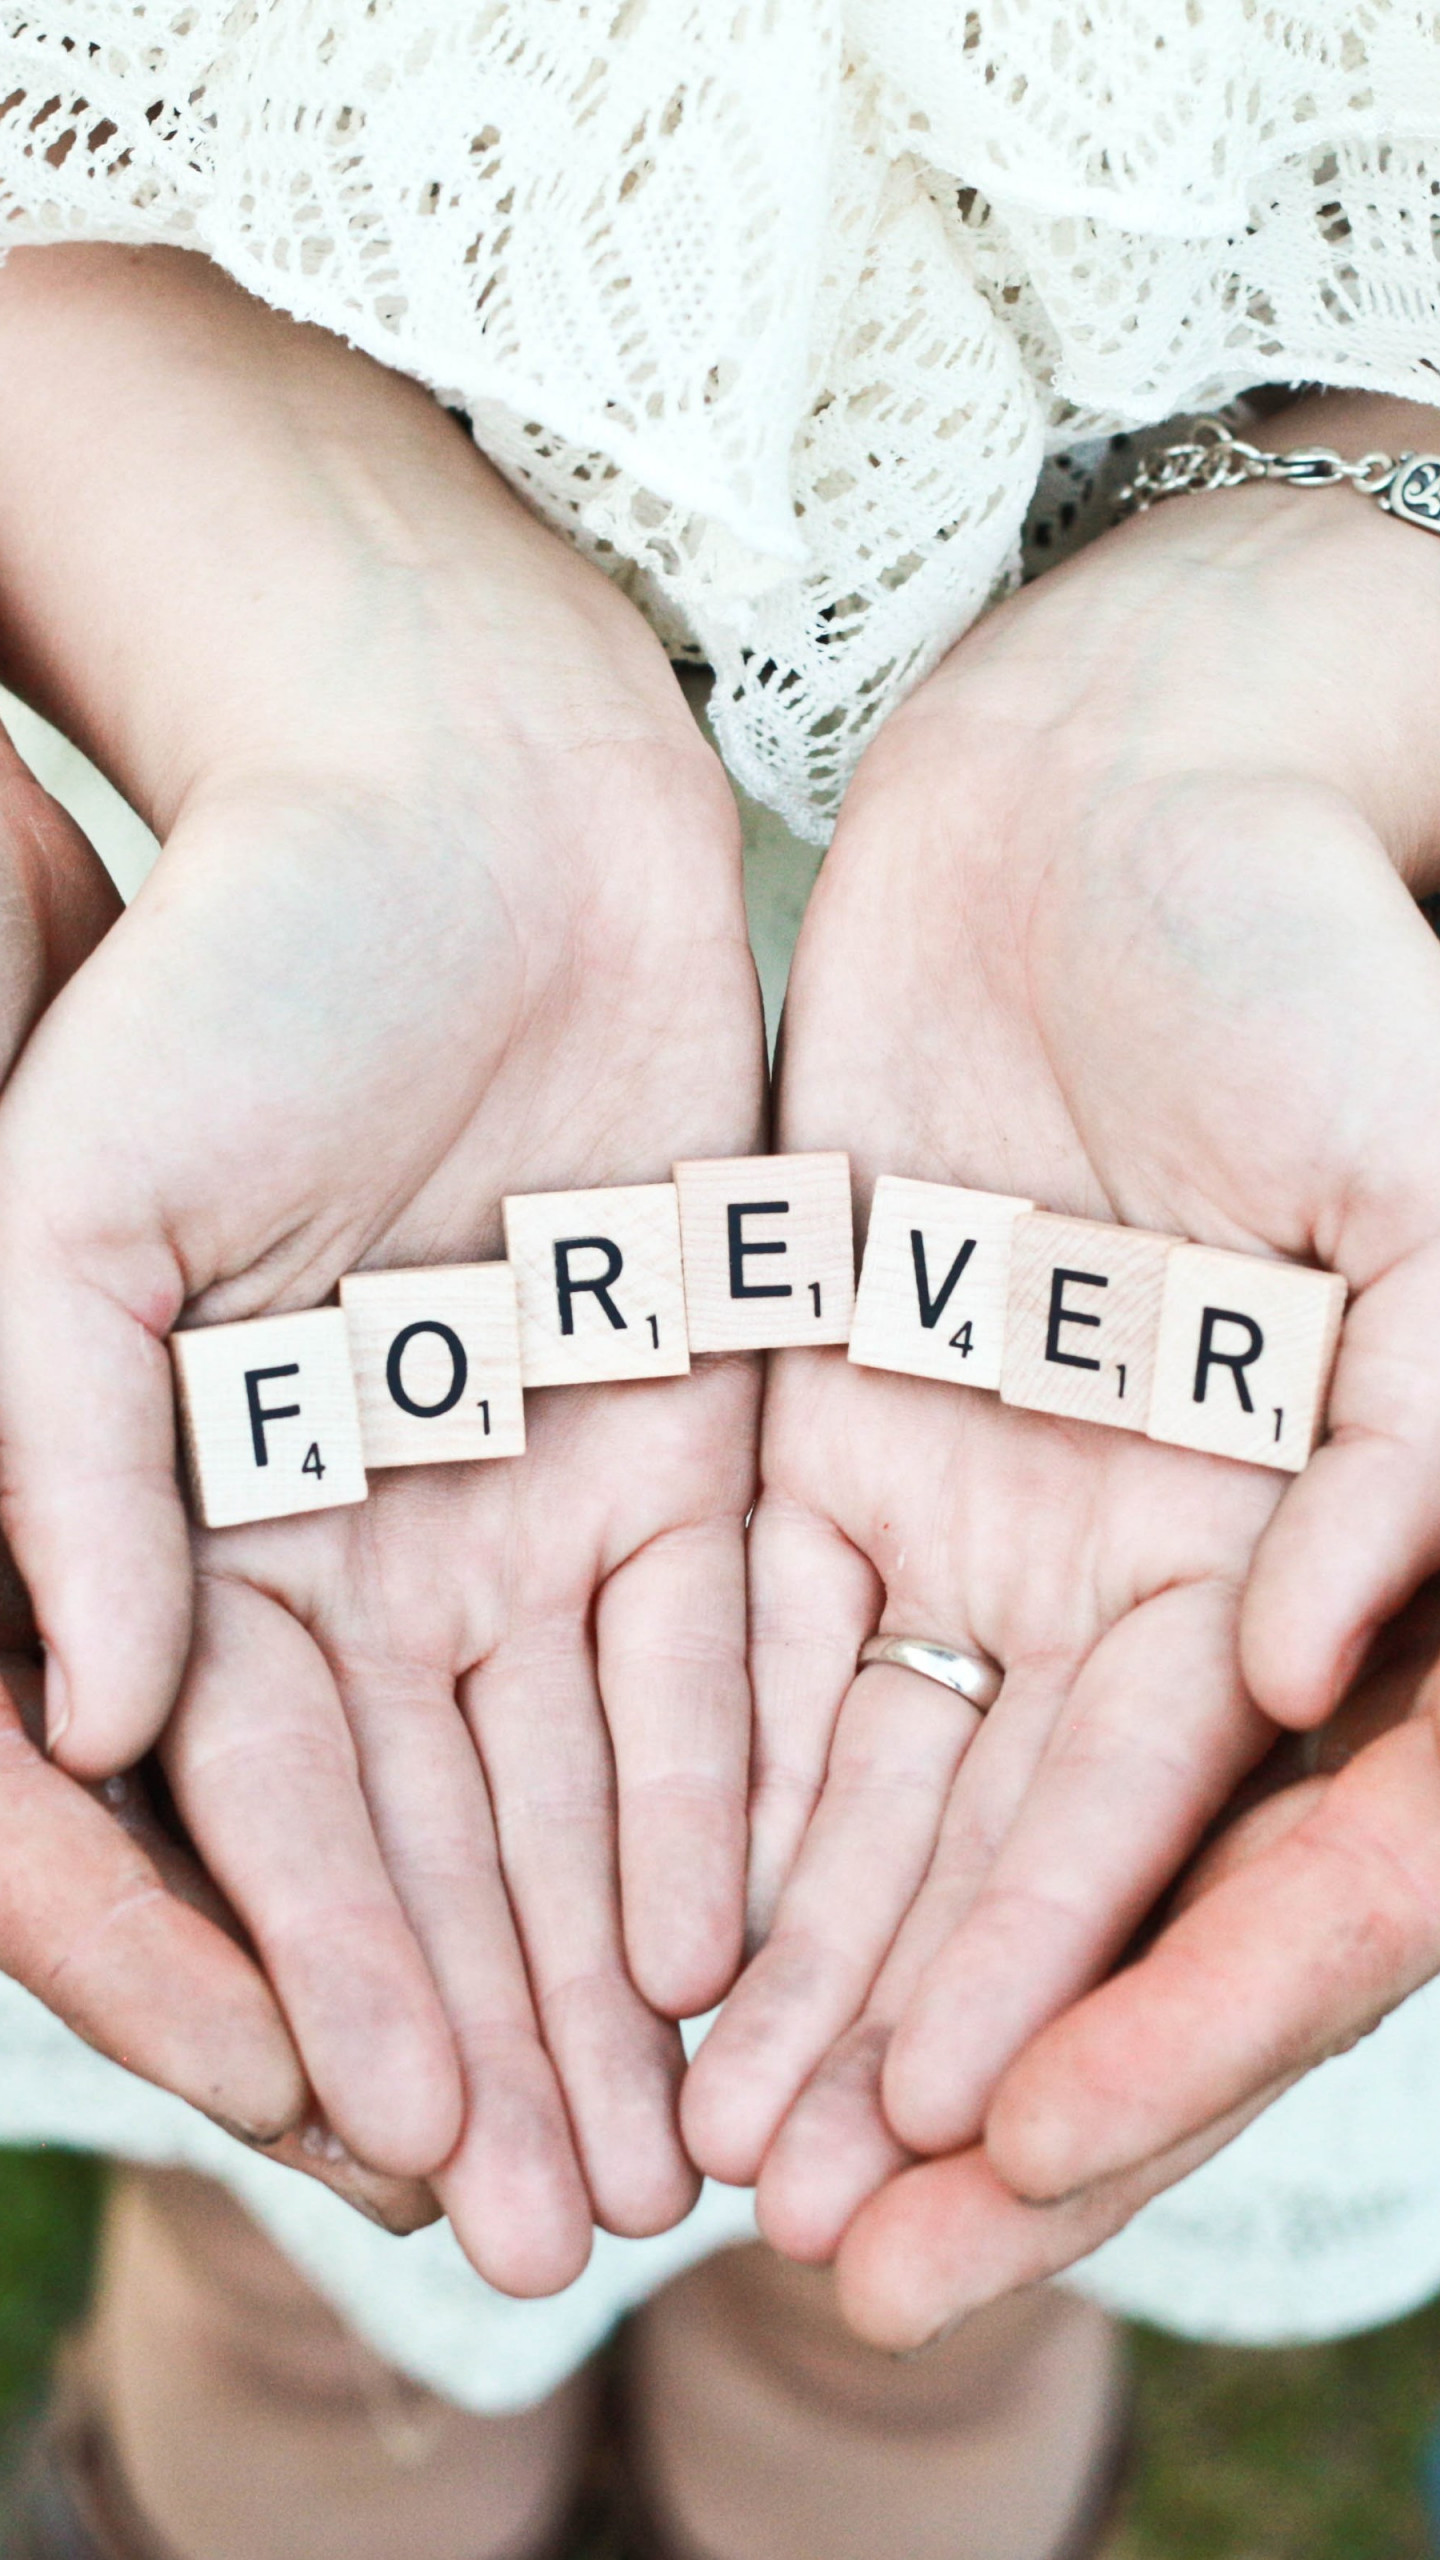 Forever message in their hands wallpaper 1440x2560